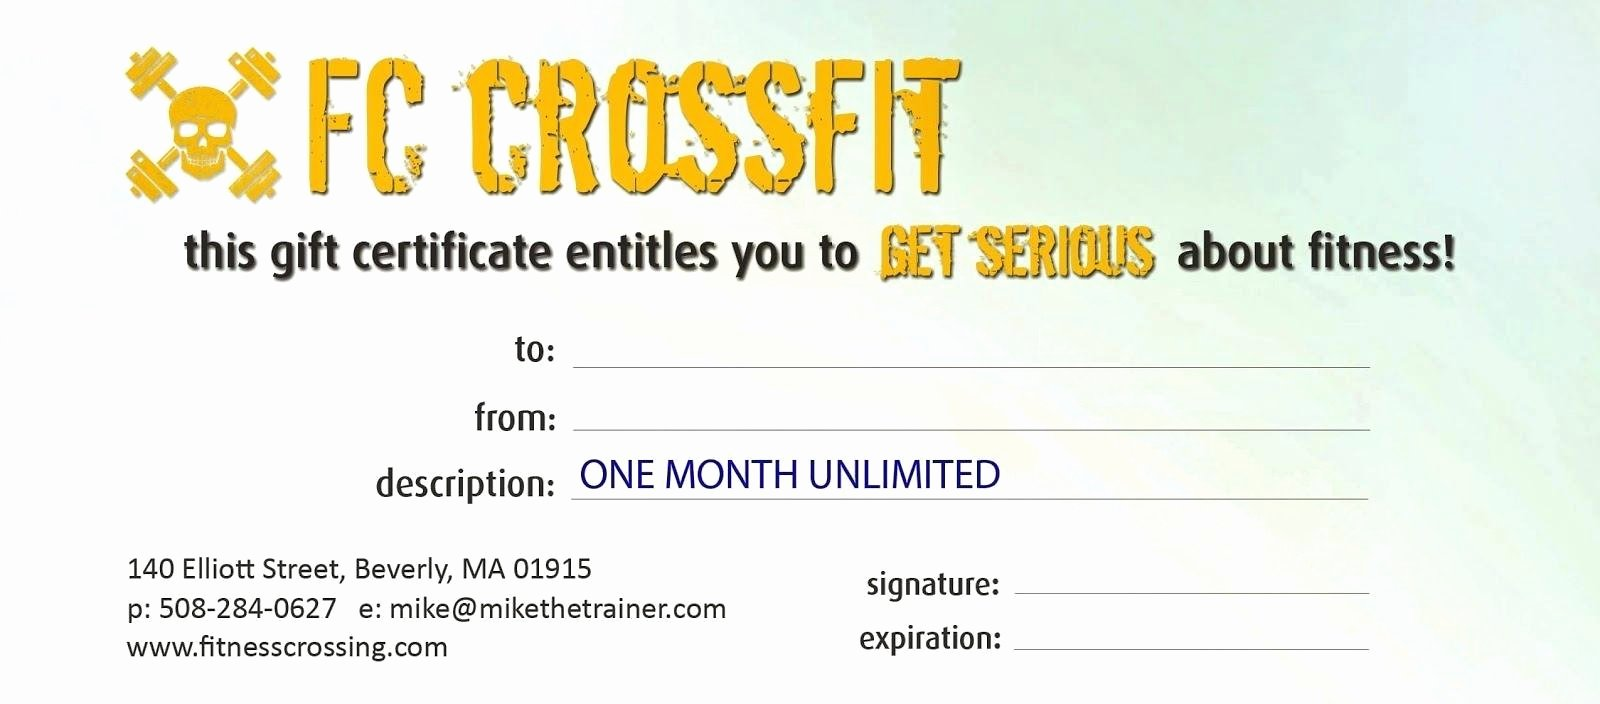 Fitness Gift Certificate Template Inspirational Fitness Gift Certificate Template Image – Gym Fitness